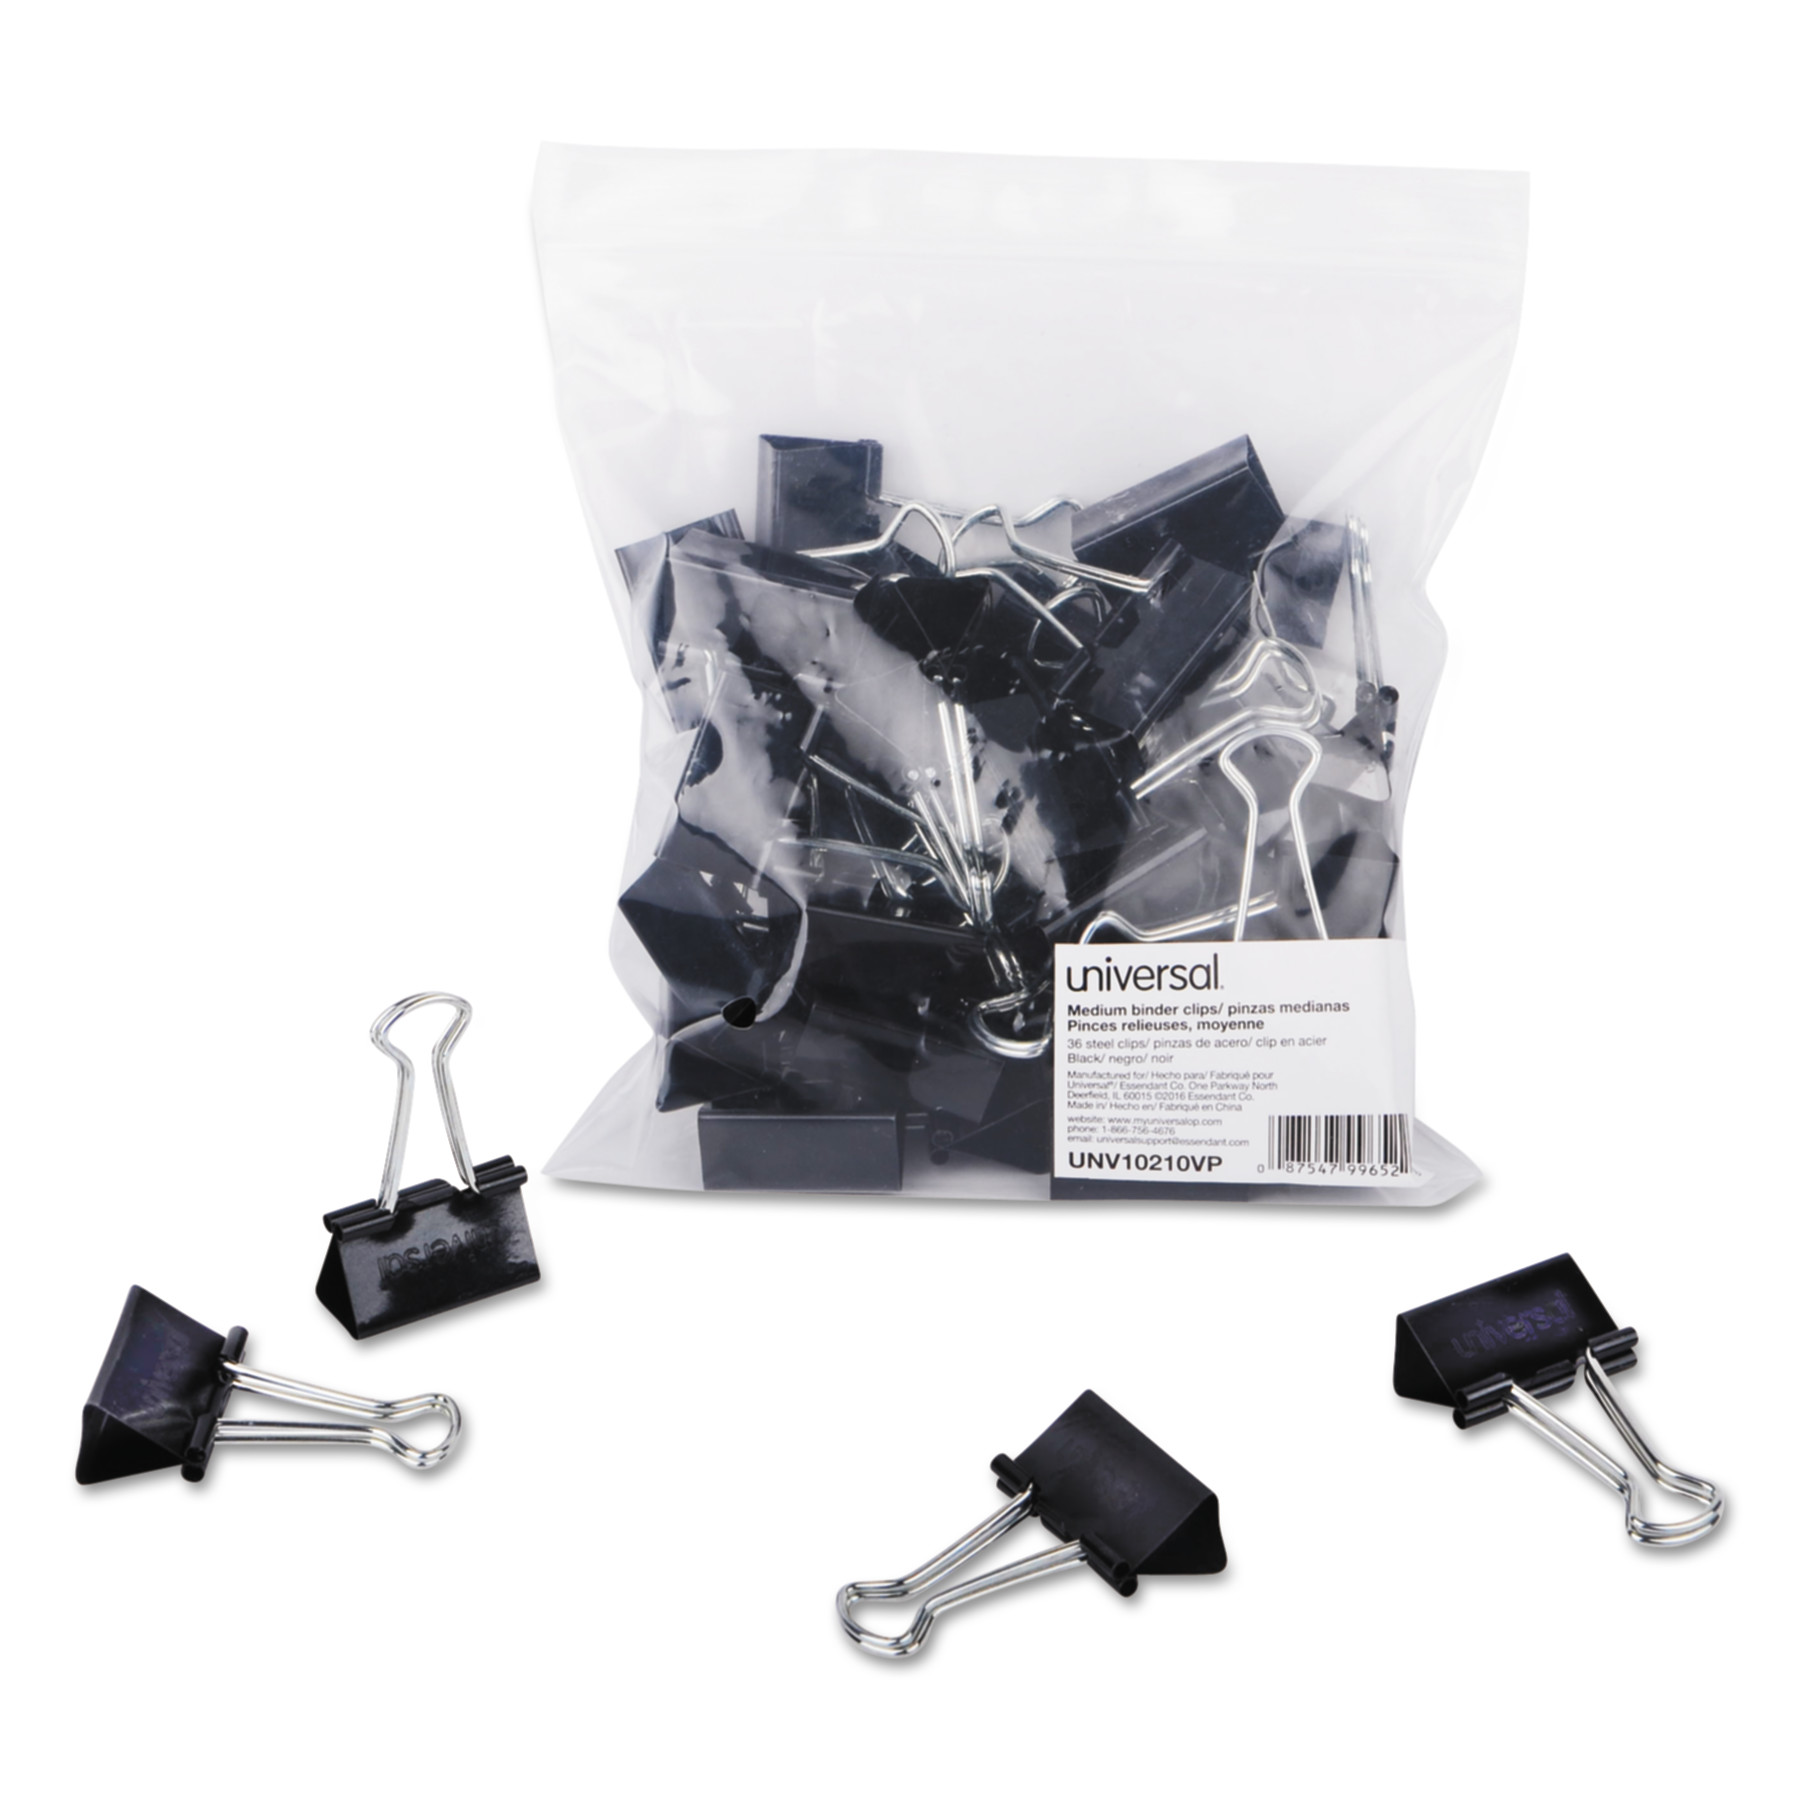 "Universal Medium Binder Clips, Zip-Seal Bag, 5/8"" Capacity, 1 1/4"" Wide, Black, 36/Bag"